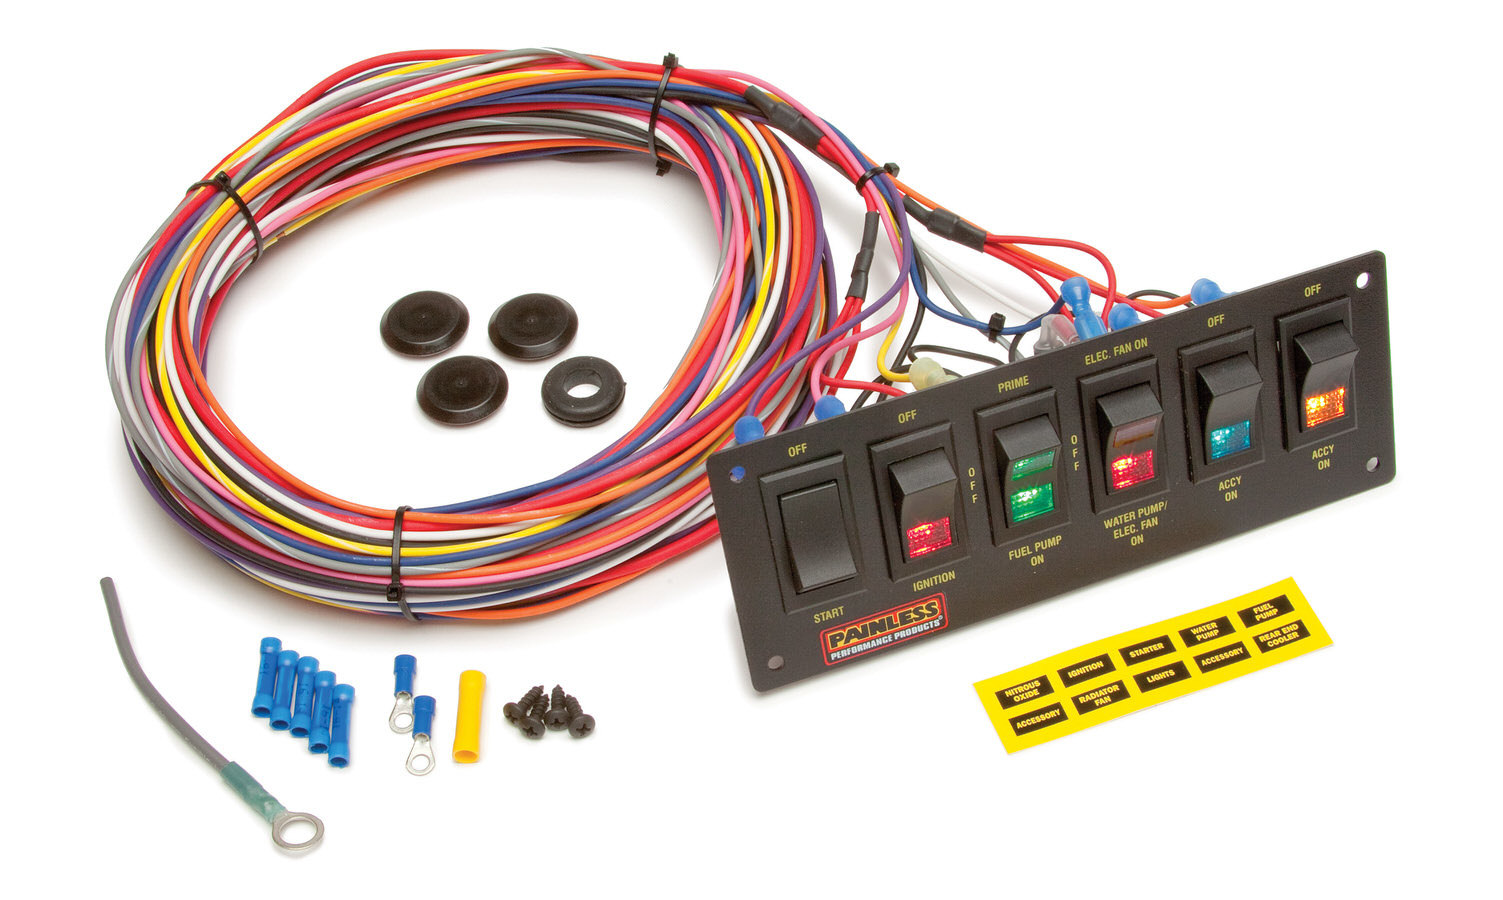 Painless Wiring 50406 Switch Panel, Dash Mount, 8-3/4 x 3 in, 1 Momentary Rocker / 3 Rockers / 2 3-Way Position Rockers, Indicator Lights, Harness, Black, Kit